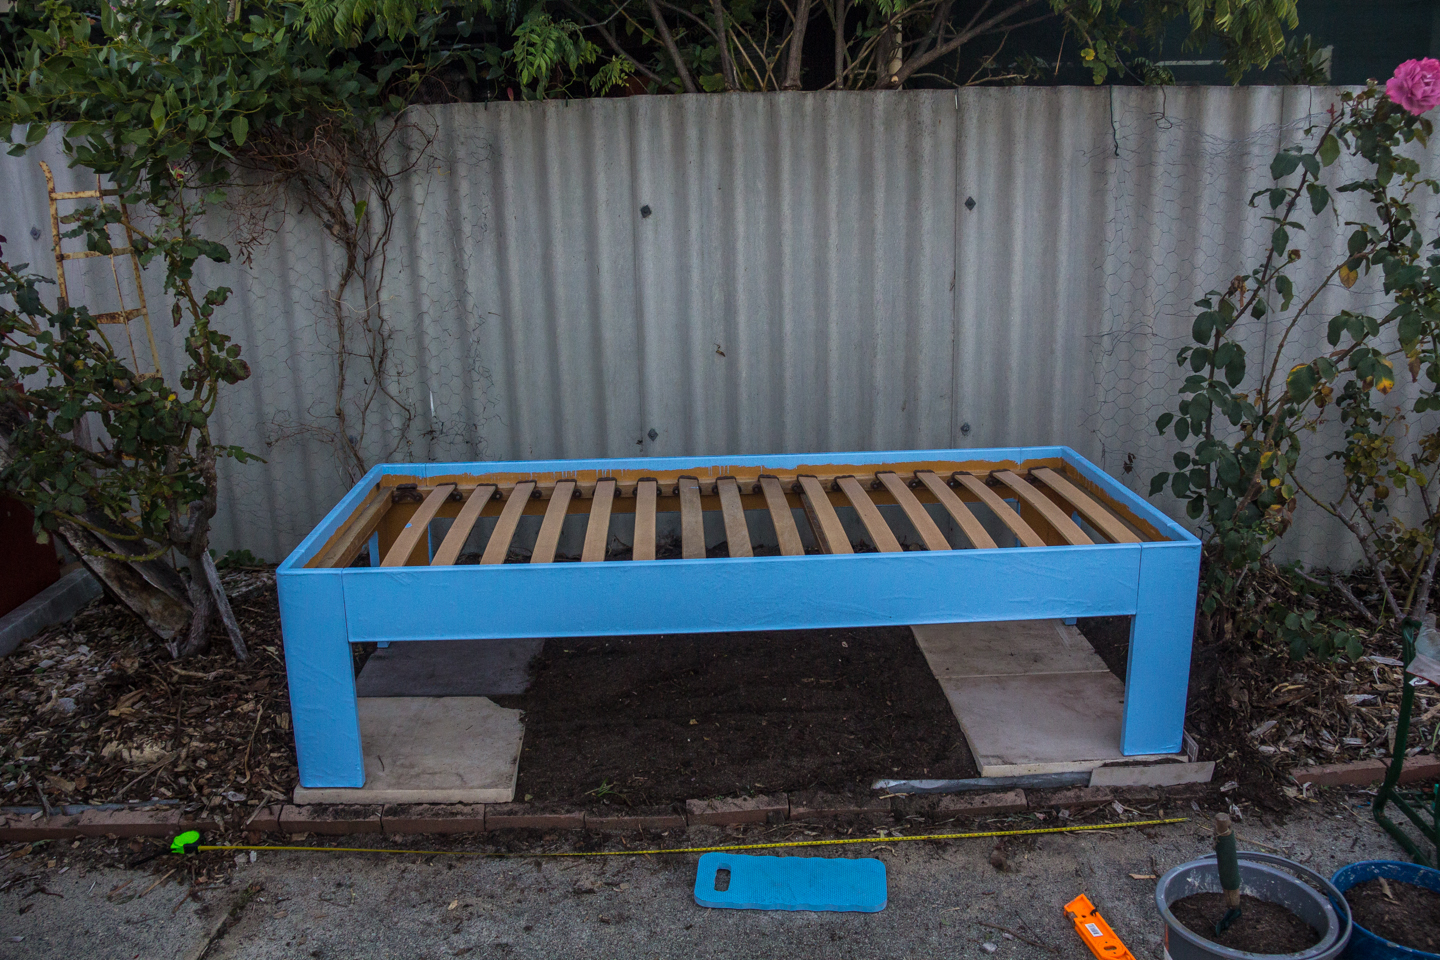 Bed frame on top of the pavement.